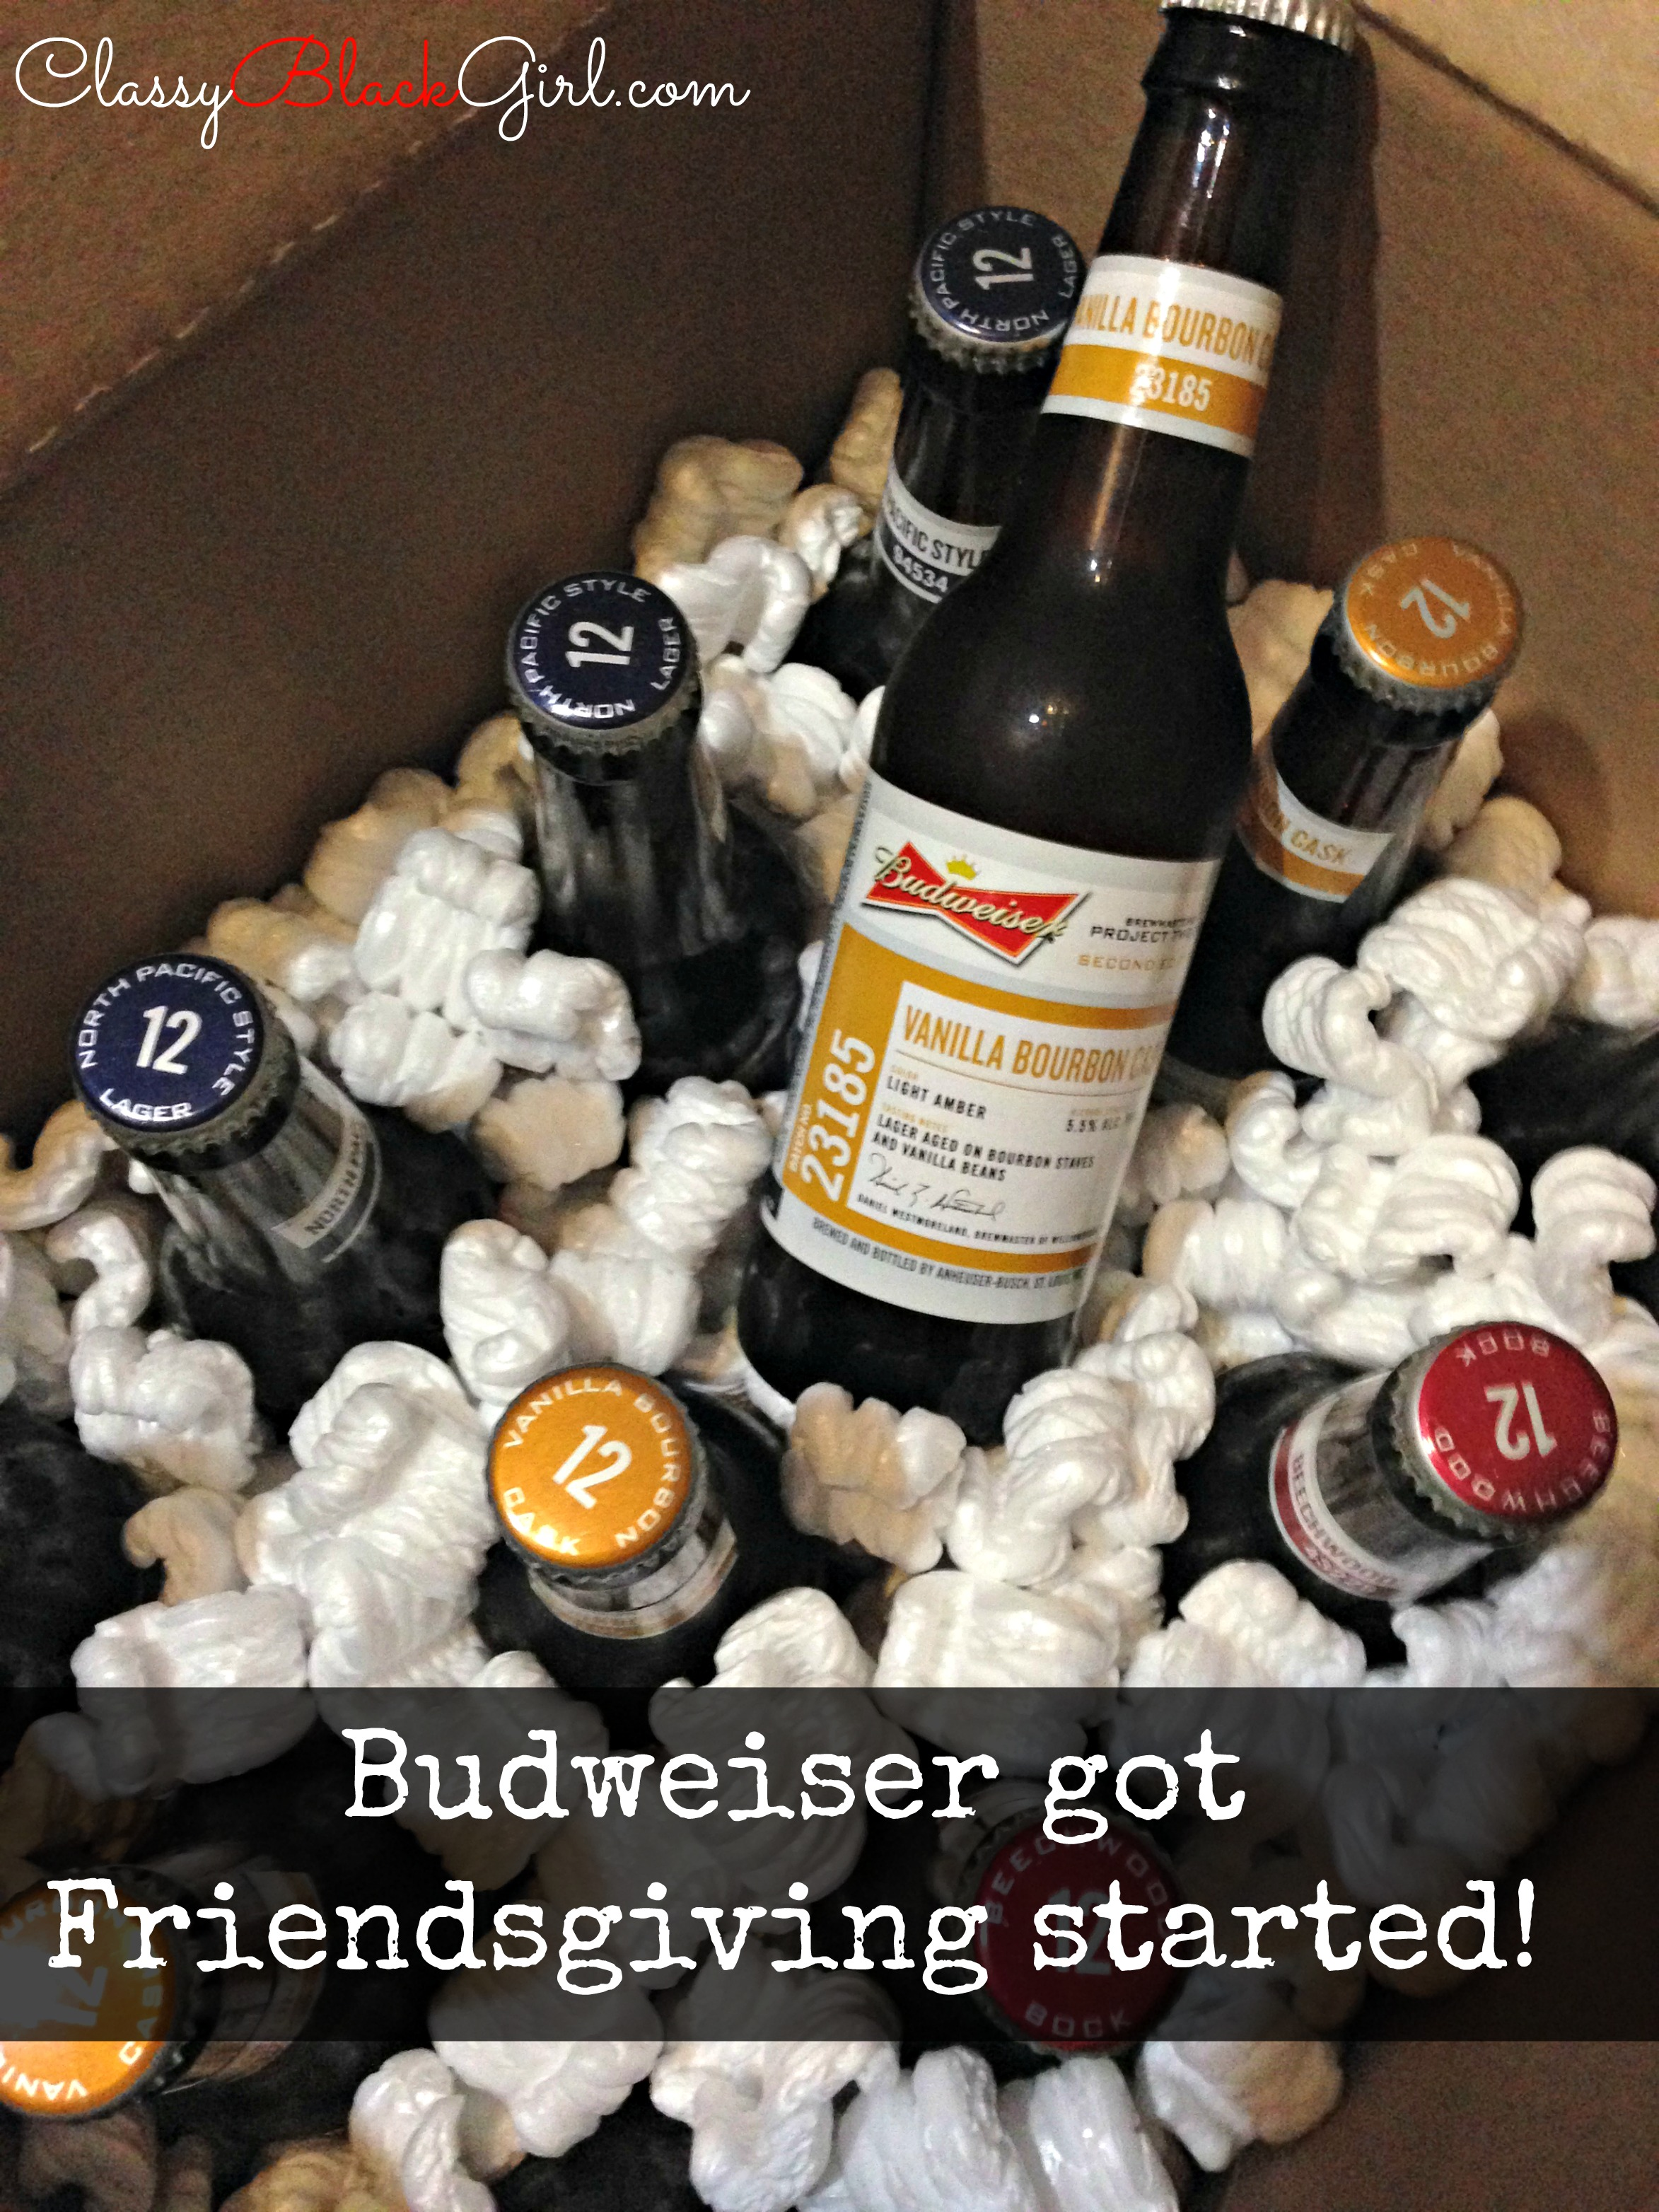 Budweiser Friendsgiving USE